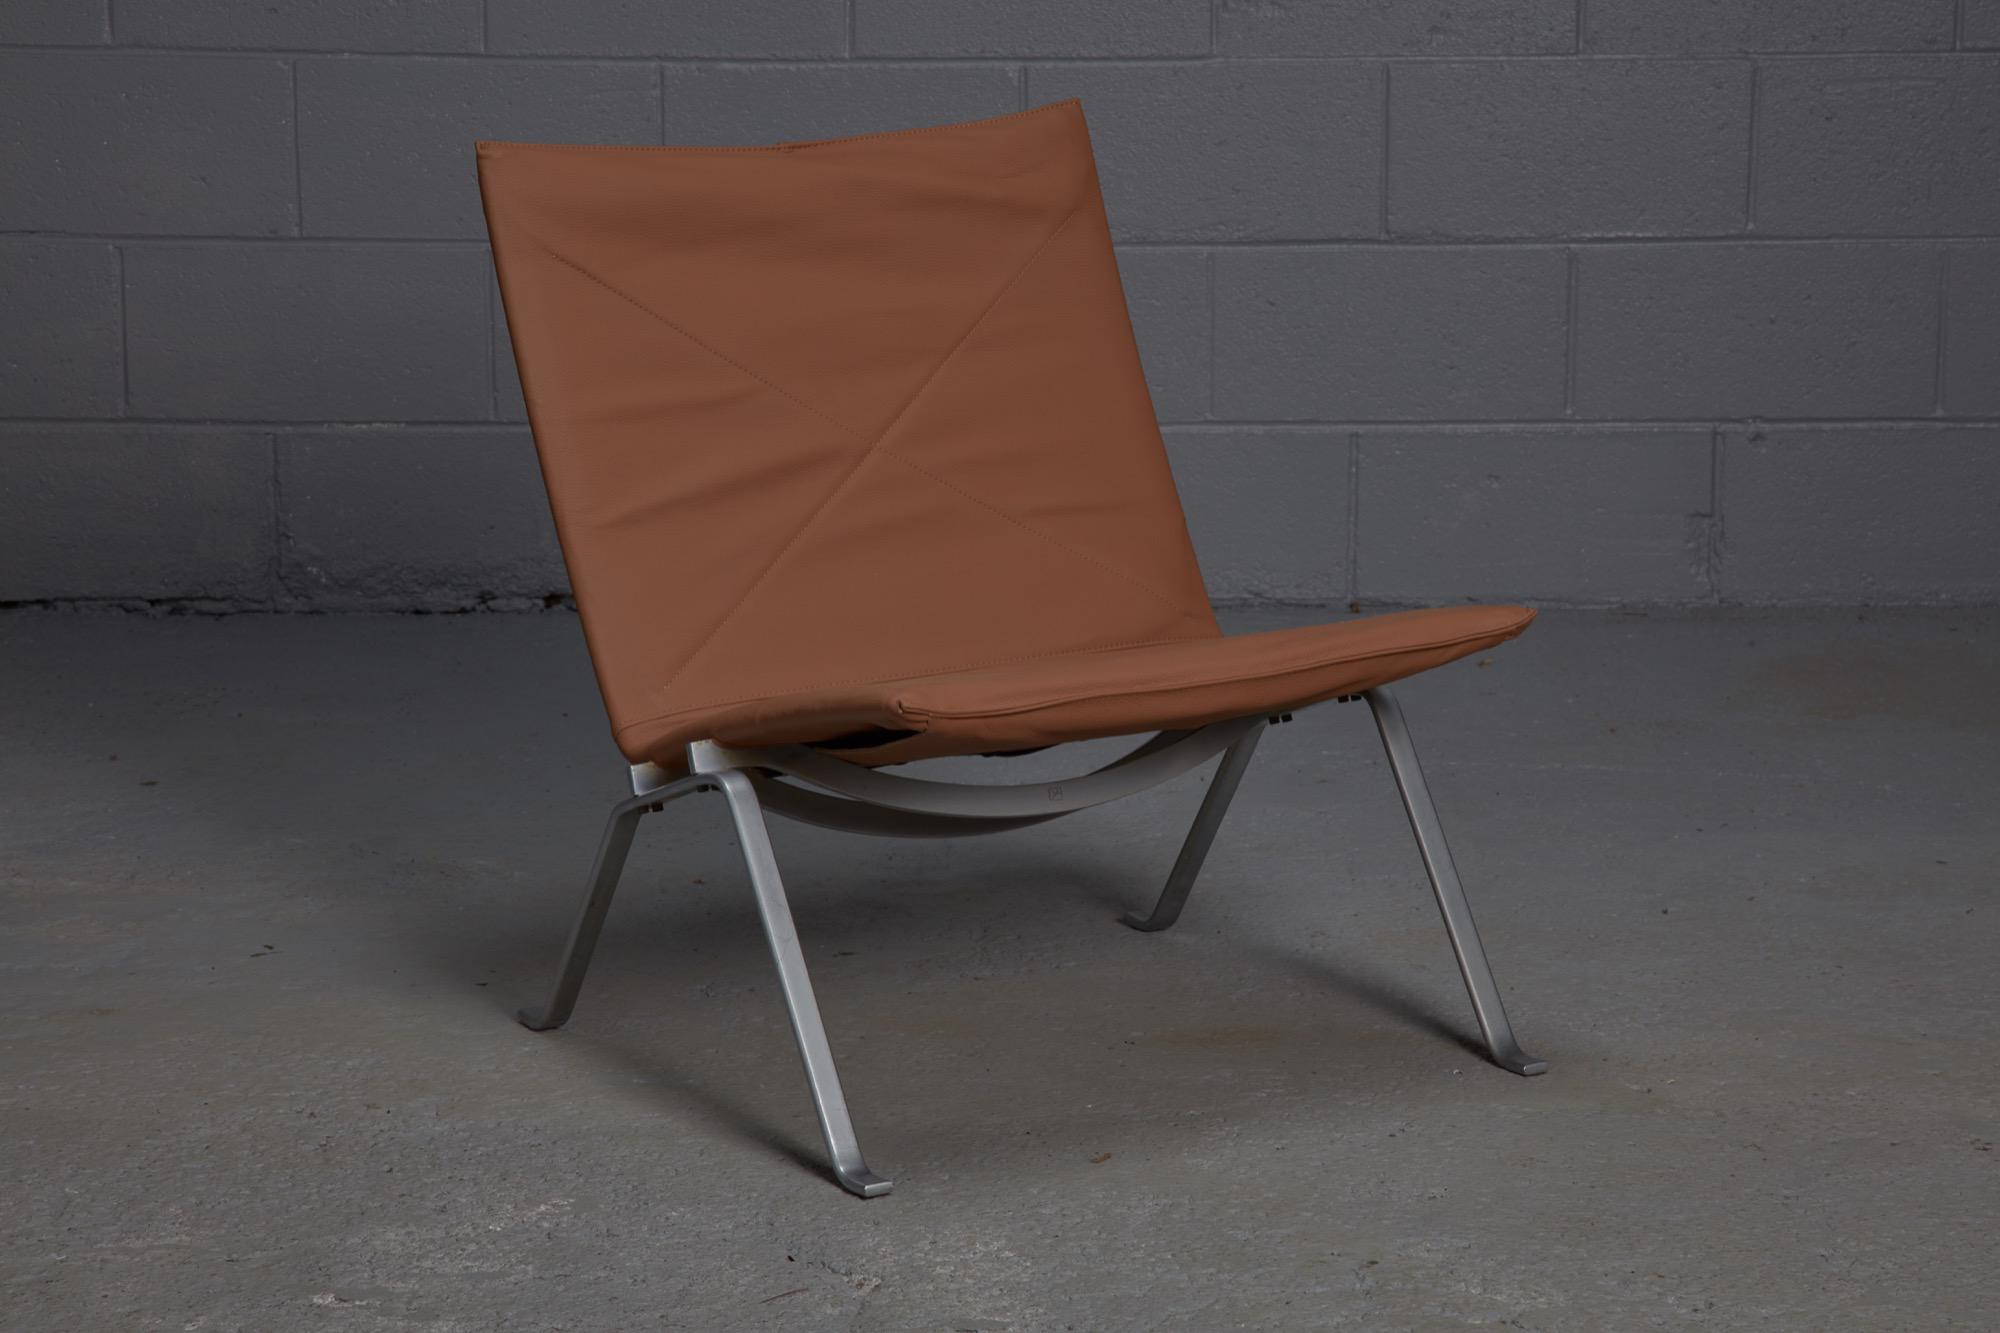 Mid Century Modern Poul Kjaerholm Pk22 Lounge Chair For Sale   Image 3 Of 3